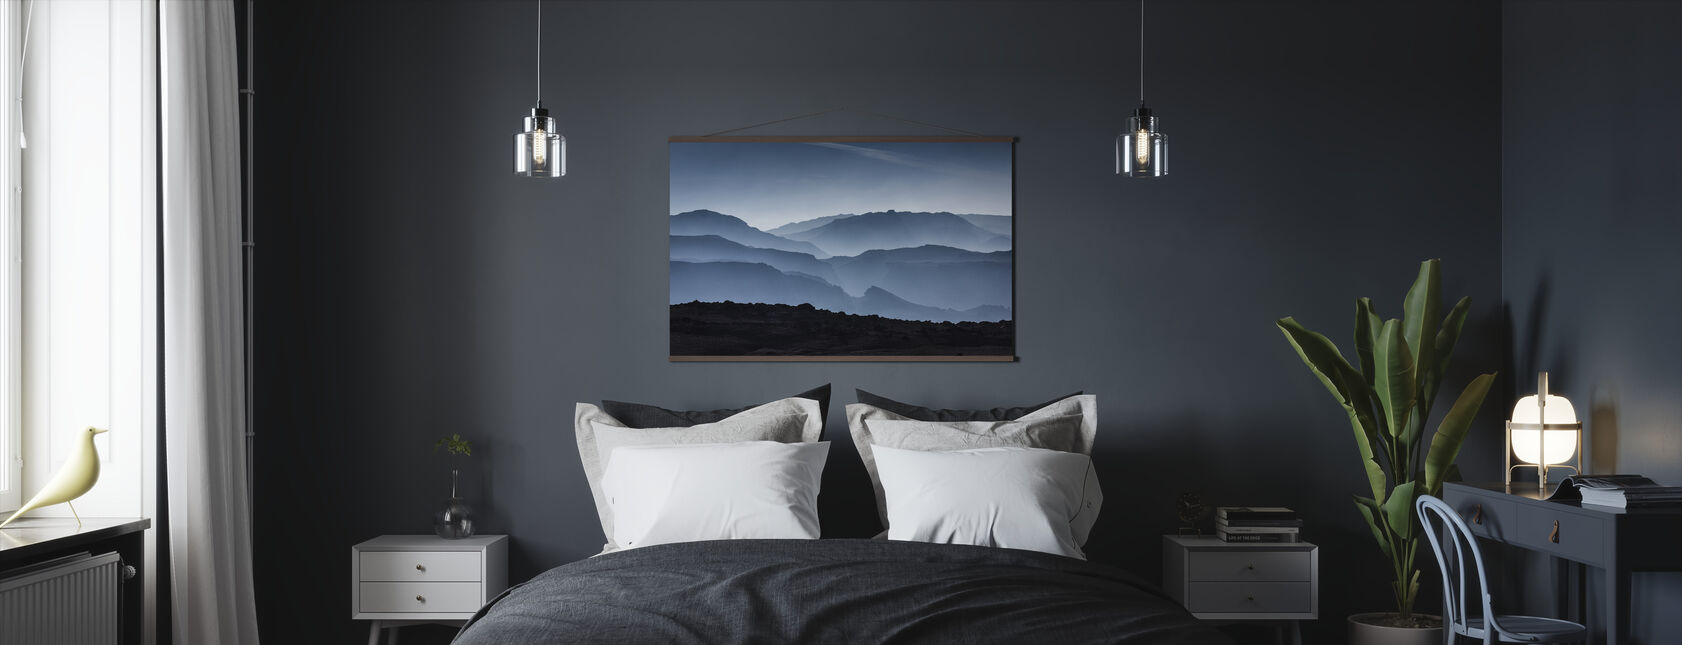 Icelandic Mountains - Poster - Bedroom